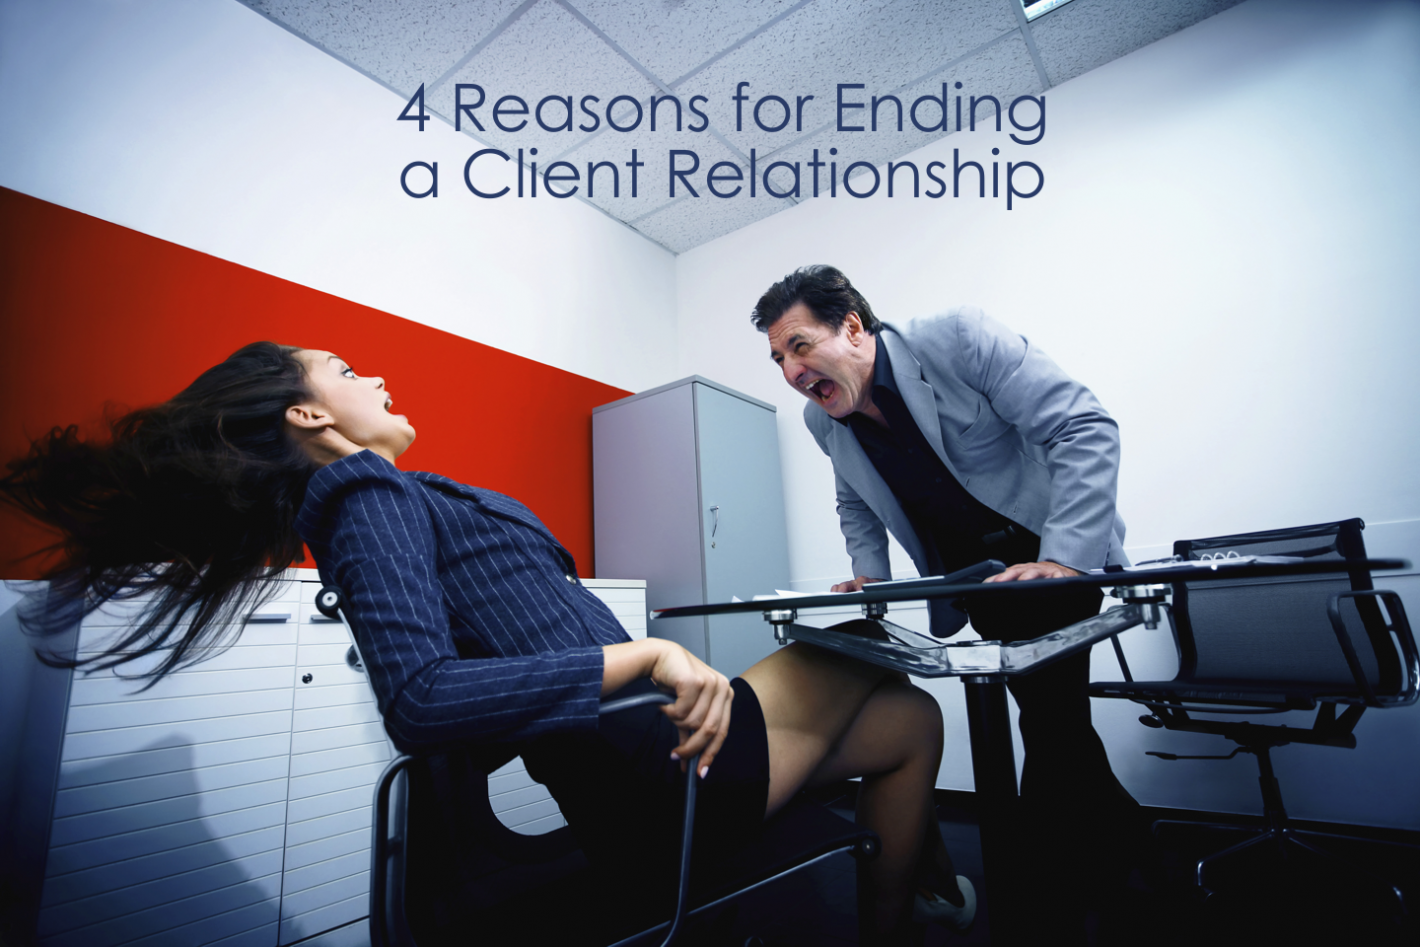 4 Reasons for Ending a Client Relationship